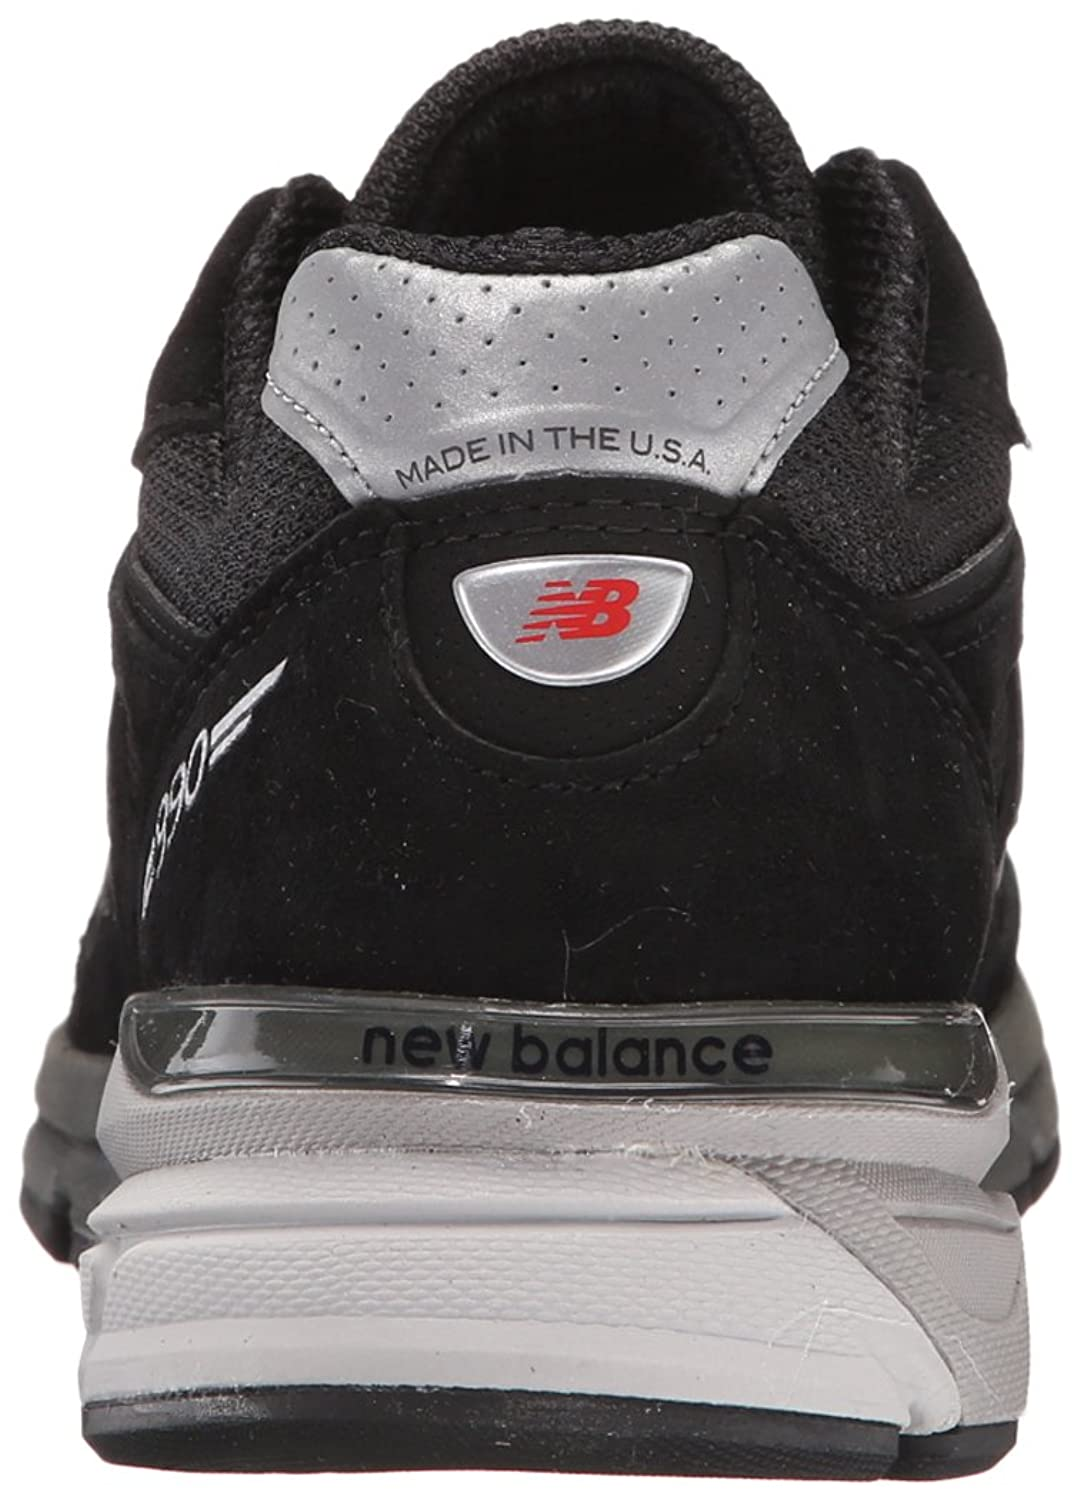 New Balance 990 Svarte Menn tM71Nod